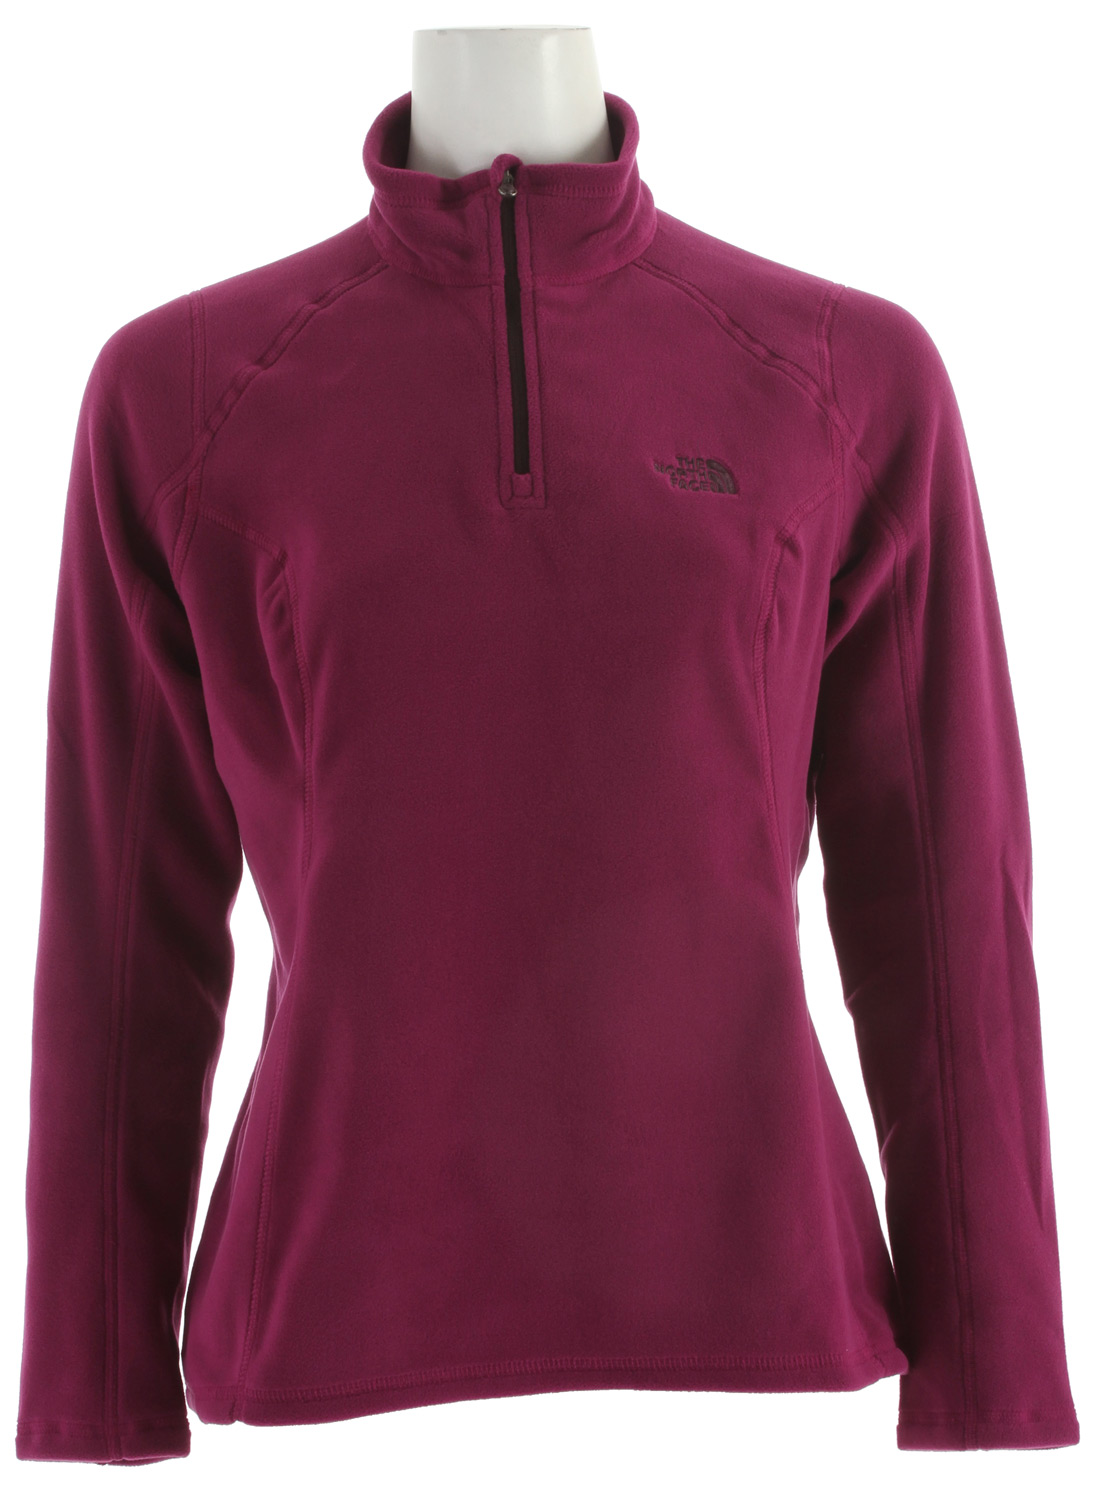 "Top-selling TKA 100 fleece pullover in new silhouette and upgraded Polartec Classic 100 is perfect for cool-weather layeringKey Features of the The North Face TKA 100 Microvelour Glacier 1/4 Zip Fleece: Unique microfibers provide an unparalleled soft hand feel Ultraviolet Protection Factor (UPF) 30 Proves 10% more warmth and is 50% more thermally efficient than original TKA 100 at 27% less weight 24% more breathable and 18% more compressible, providing 14 cu. in. of pack space savings Provides warmth without the weight and bulk of traditional insulating fabrics Dries quickly to minimize heat loss Pill-resistant face and back Feminine silhouette with 1"" drop tail - $43.95"